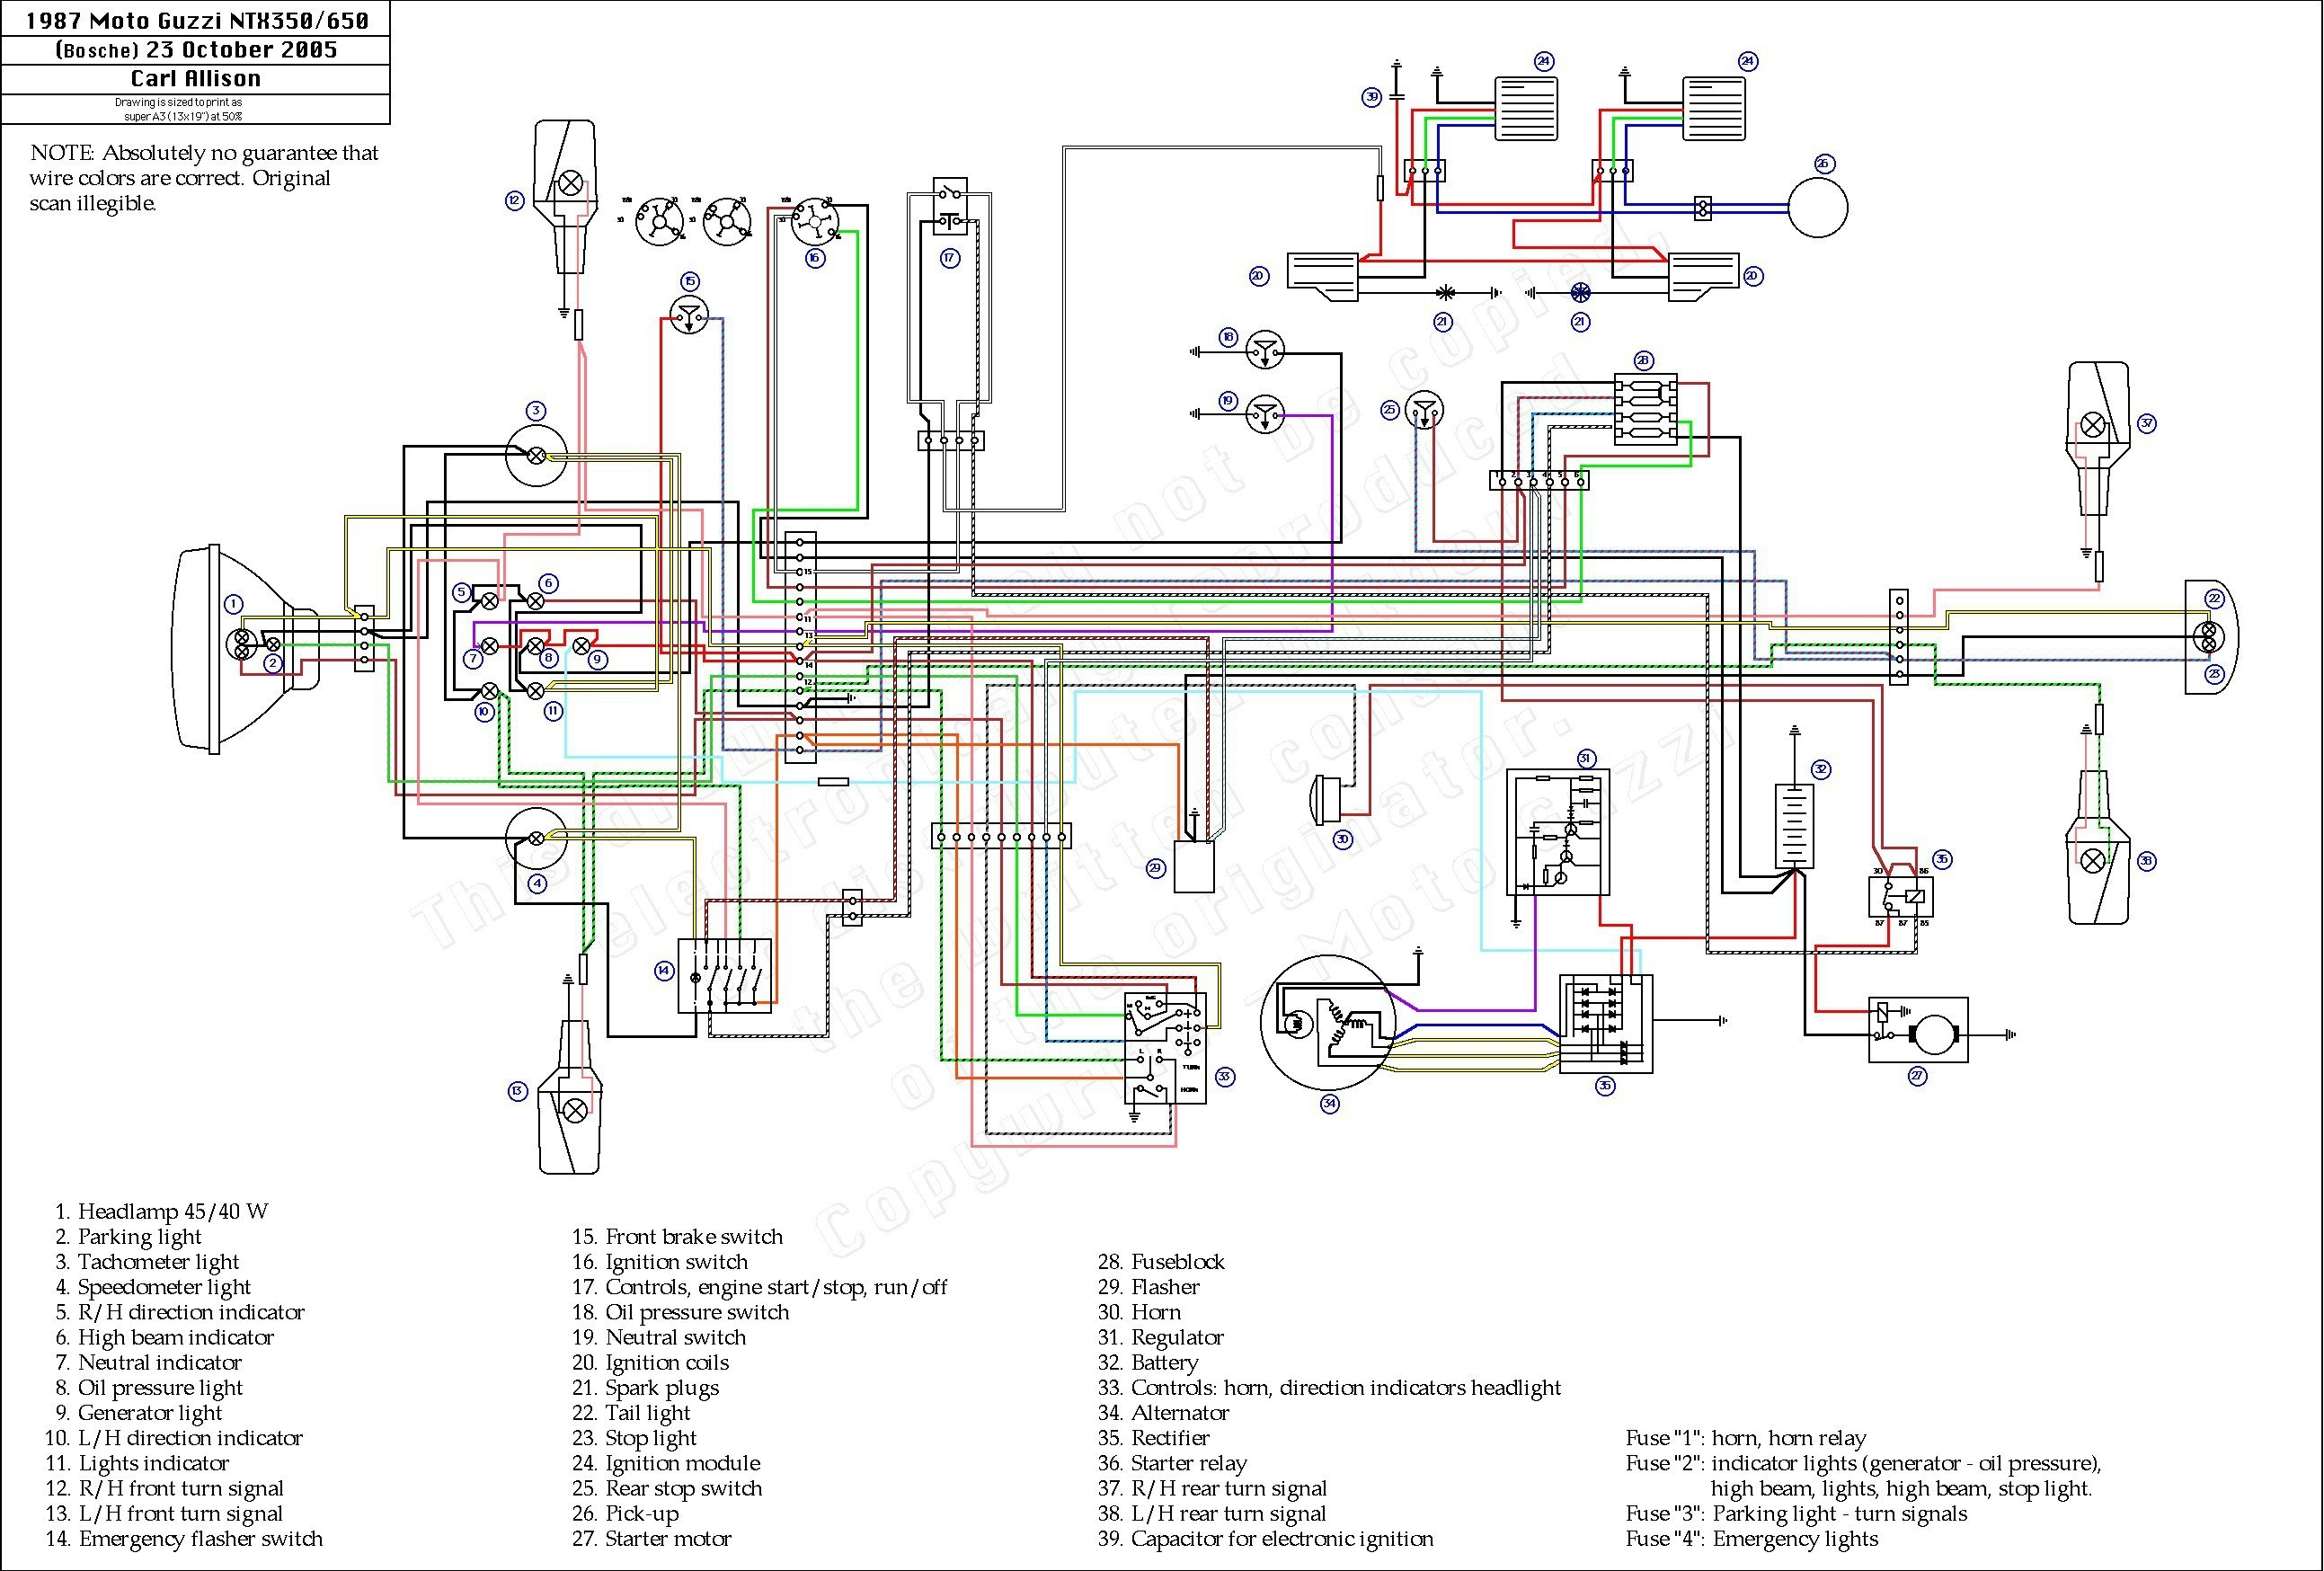 FB0B26C Peace Atv 250 Wiring Diagram | Wiring LibraryWiring Library